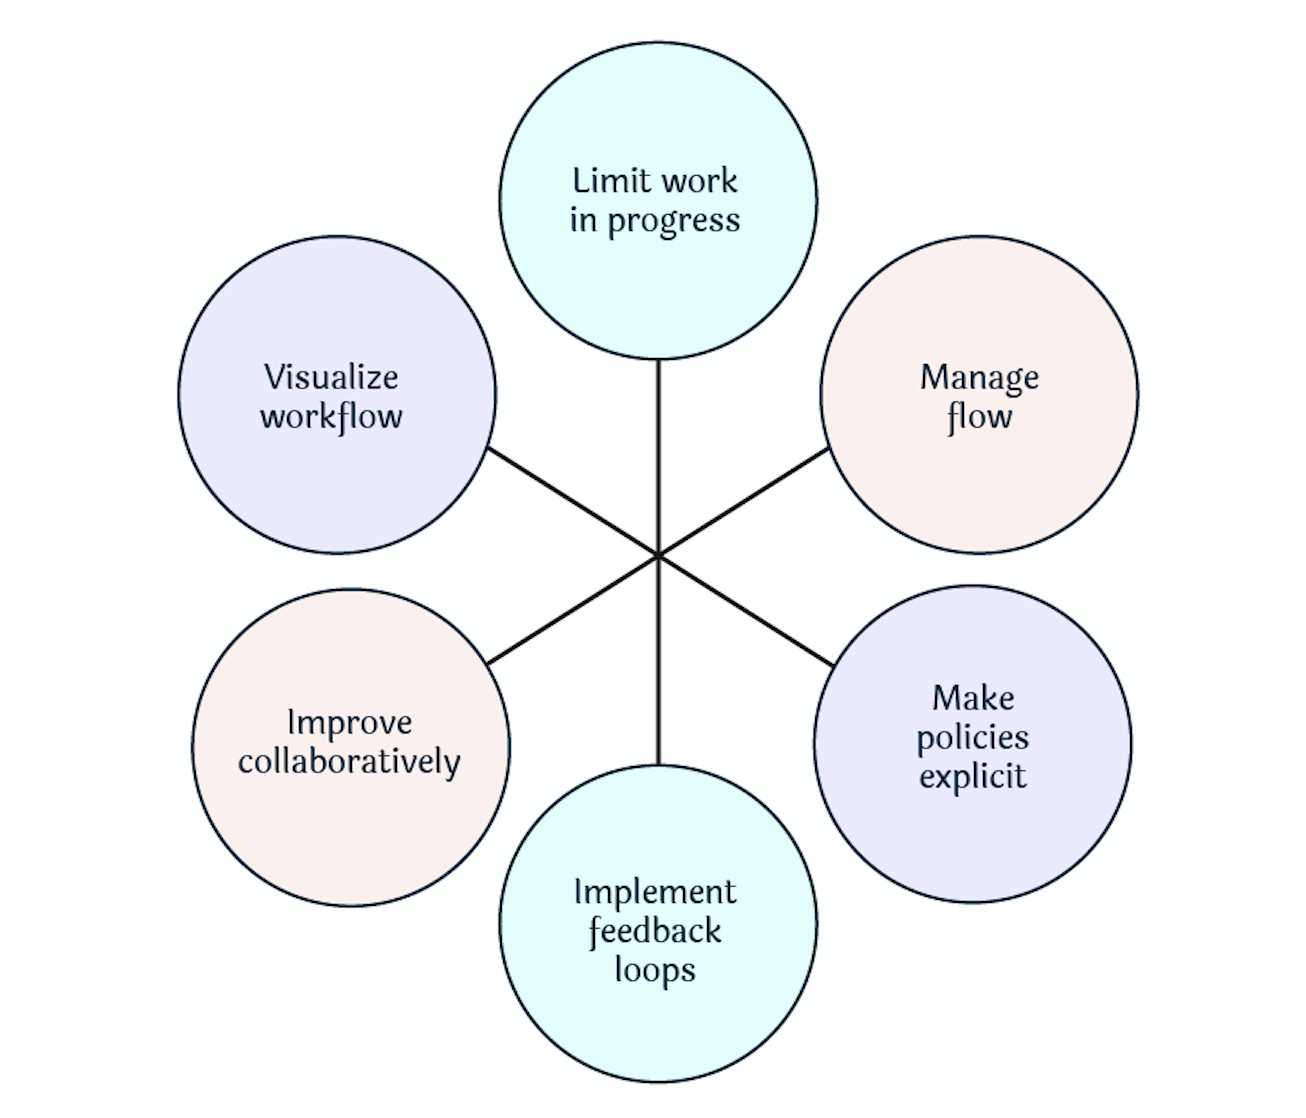 Core practices of the Kanban Method